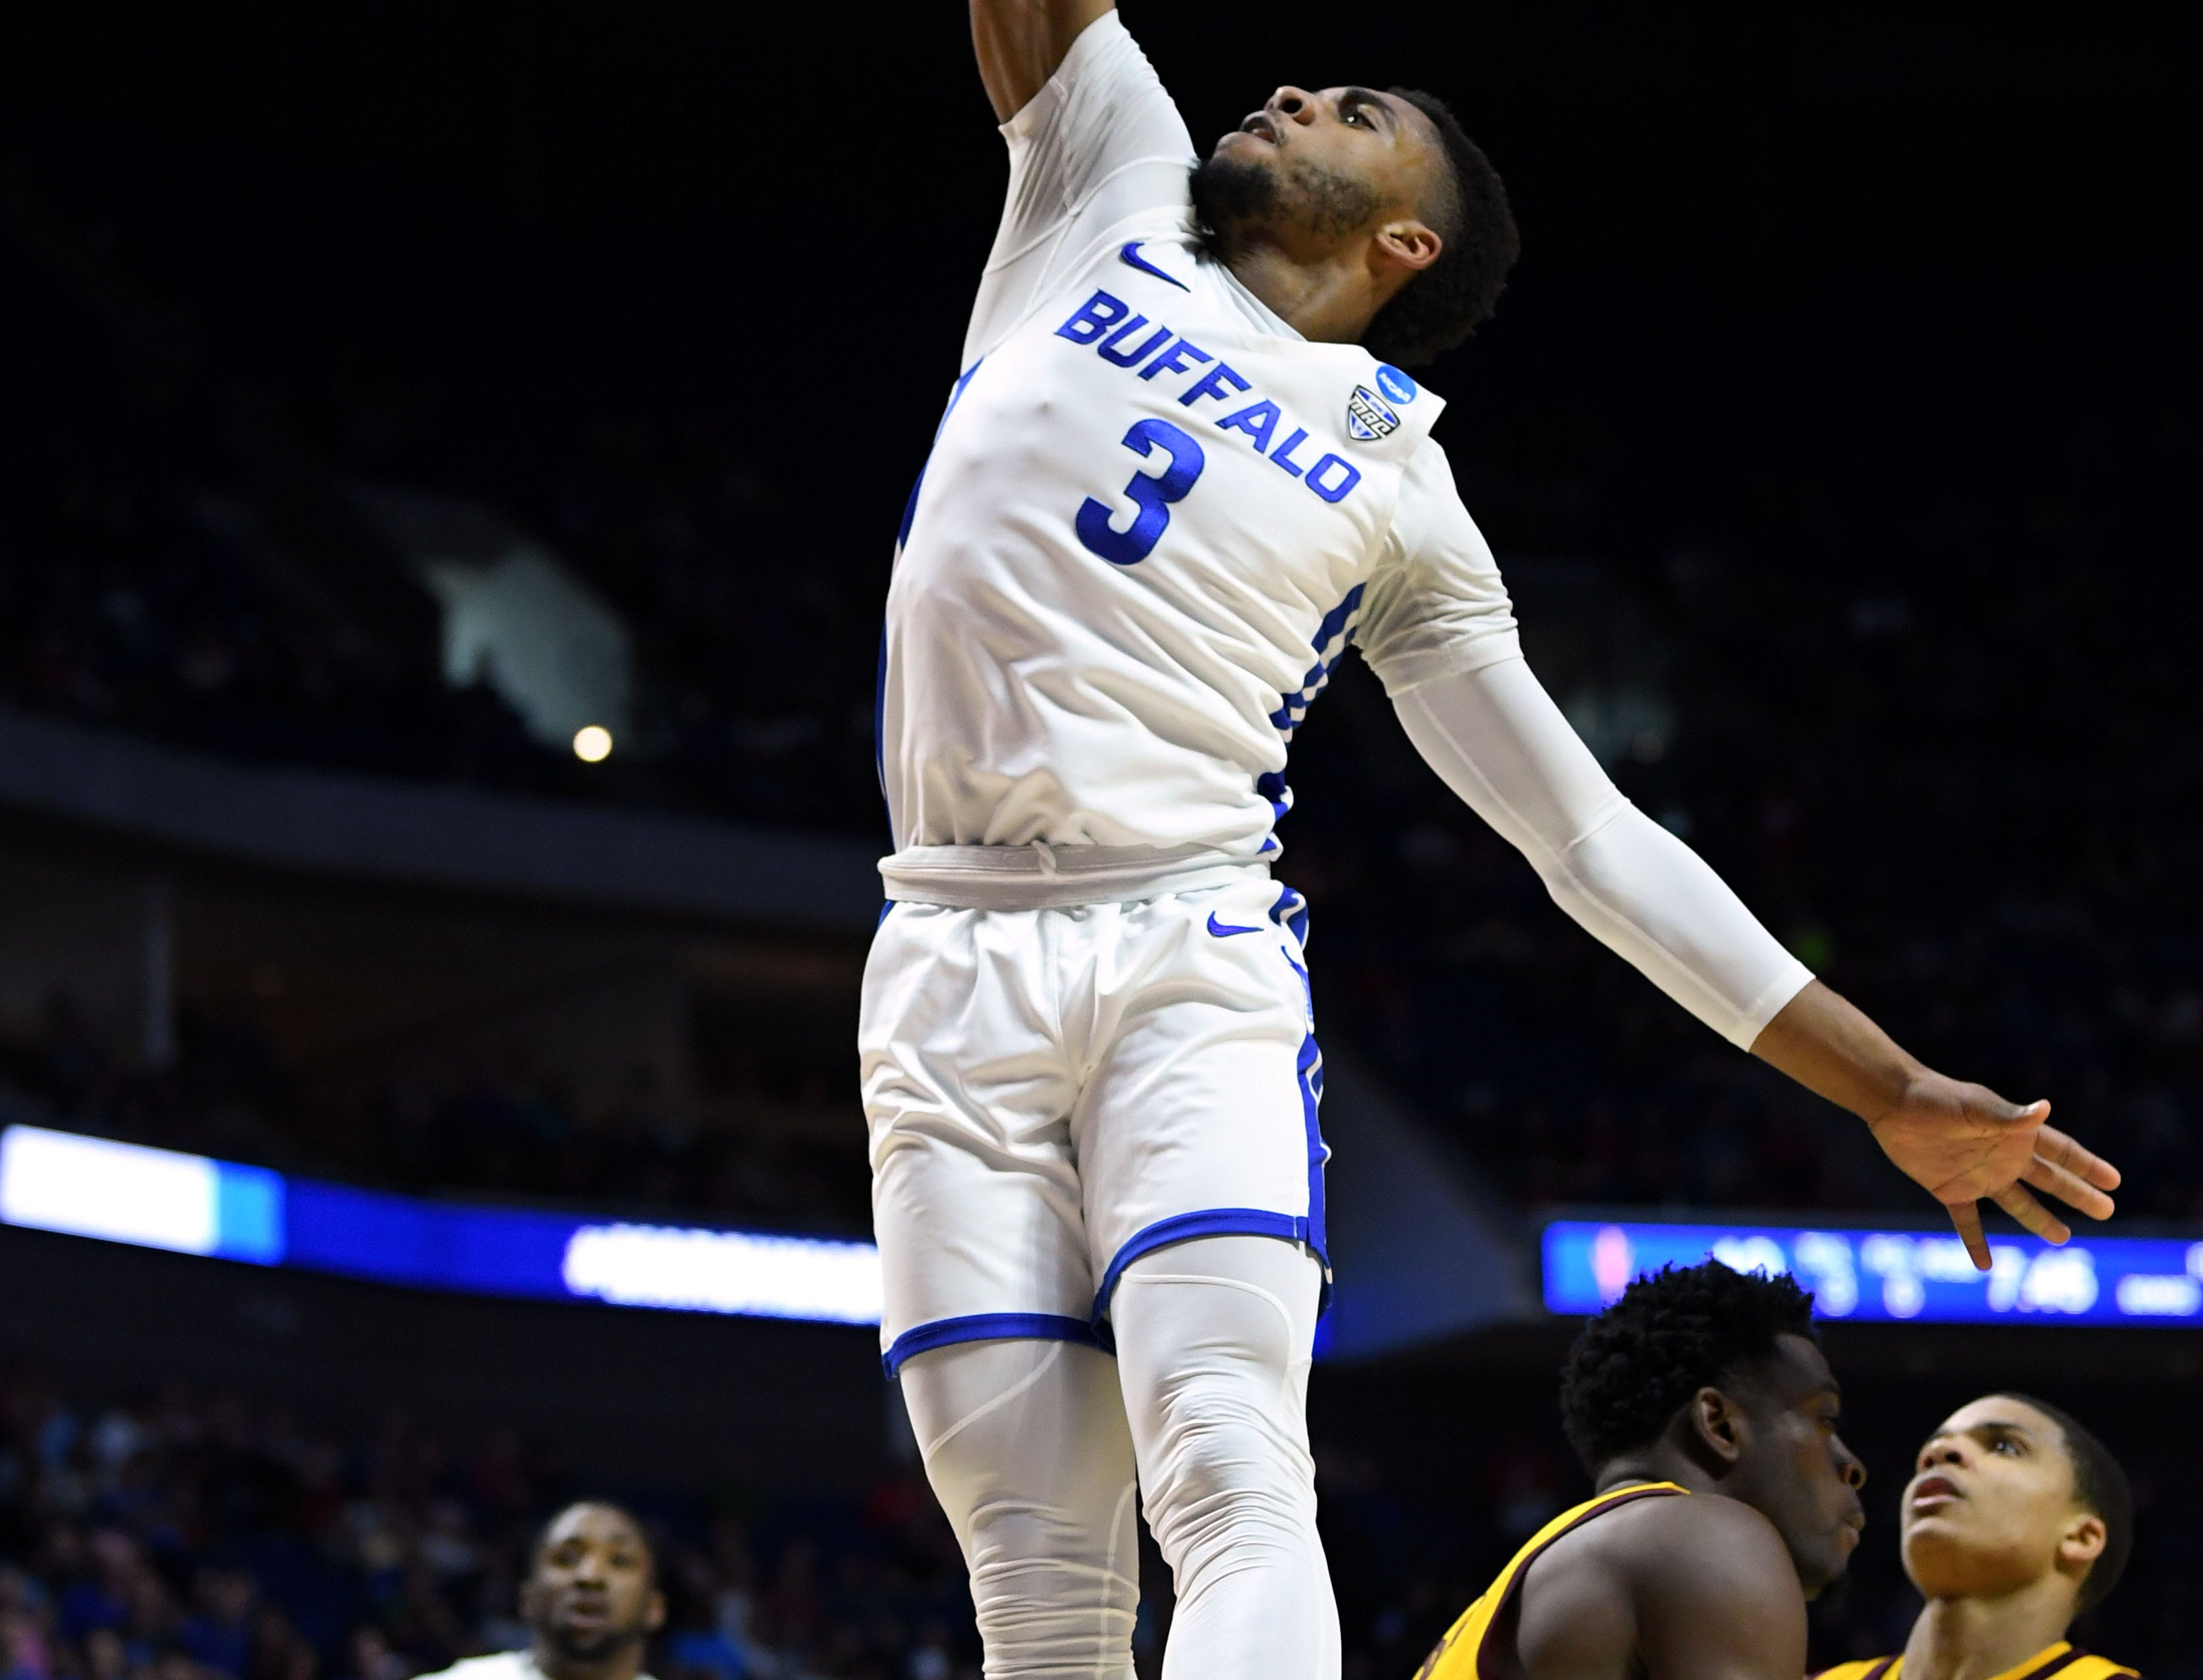 TULSA, OKLAHOMA - MARCH 22:  Jayvon Graves #3 of the Buffalo Bulls dunks the ball against the Arizona State Sun Devils during the first half of the first round game of the 2019 NCAA Men's Basketball Tournament at BOK Center on March 22, 2019 in Tulsa, Oklahoma. (Photo by Harry How/Getty Images)